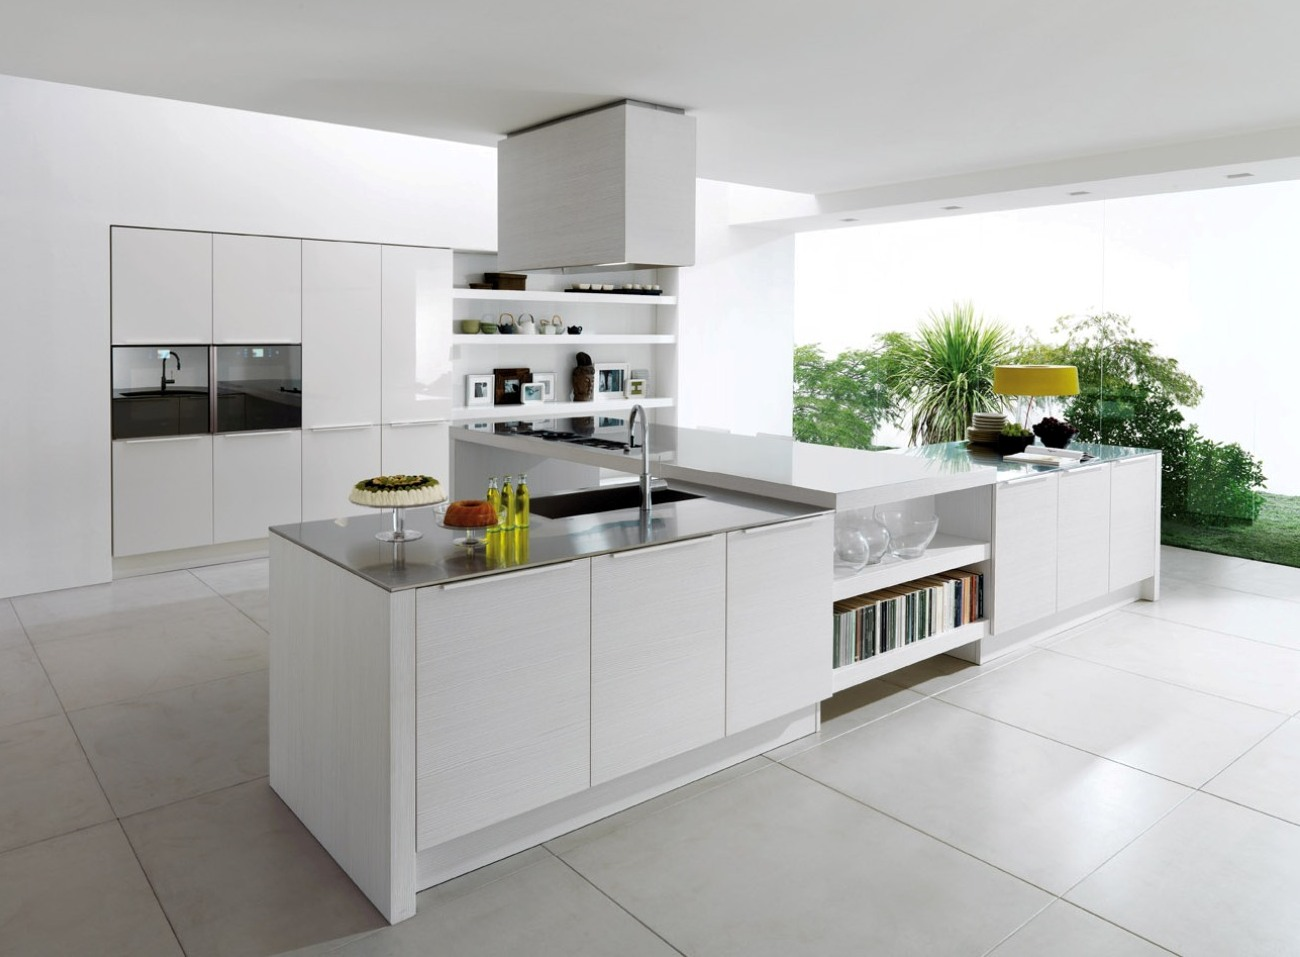 ultra modern kitchen glass 52kshares 35 modern kitchen design inspiration